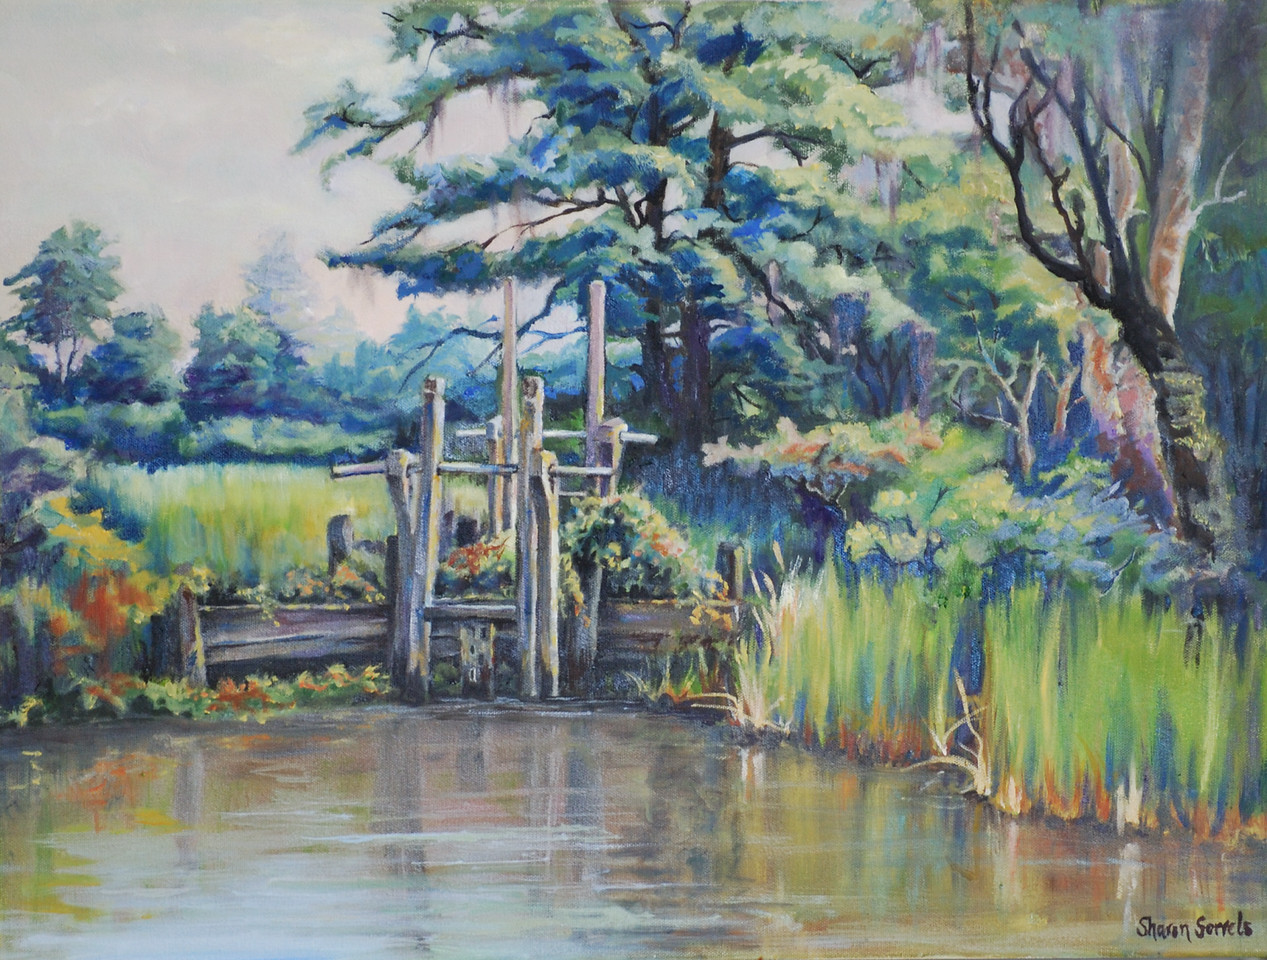 "Name: Old Rice Field Sluice Gate<br /> Medium: Oil on Canvas<br /> Size: <br /> Contact: Sharon Sorrels<br /> E-Mail: sorrelssf@usa.net <br /> To see more of Sharon's art or to make a purchase, go to  <a href=""http://www.sharonsorrels.com"">http://www.sharonsorrels.com</a>."